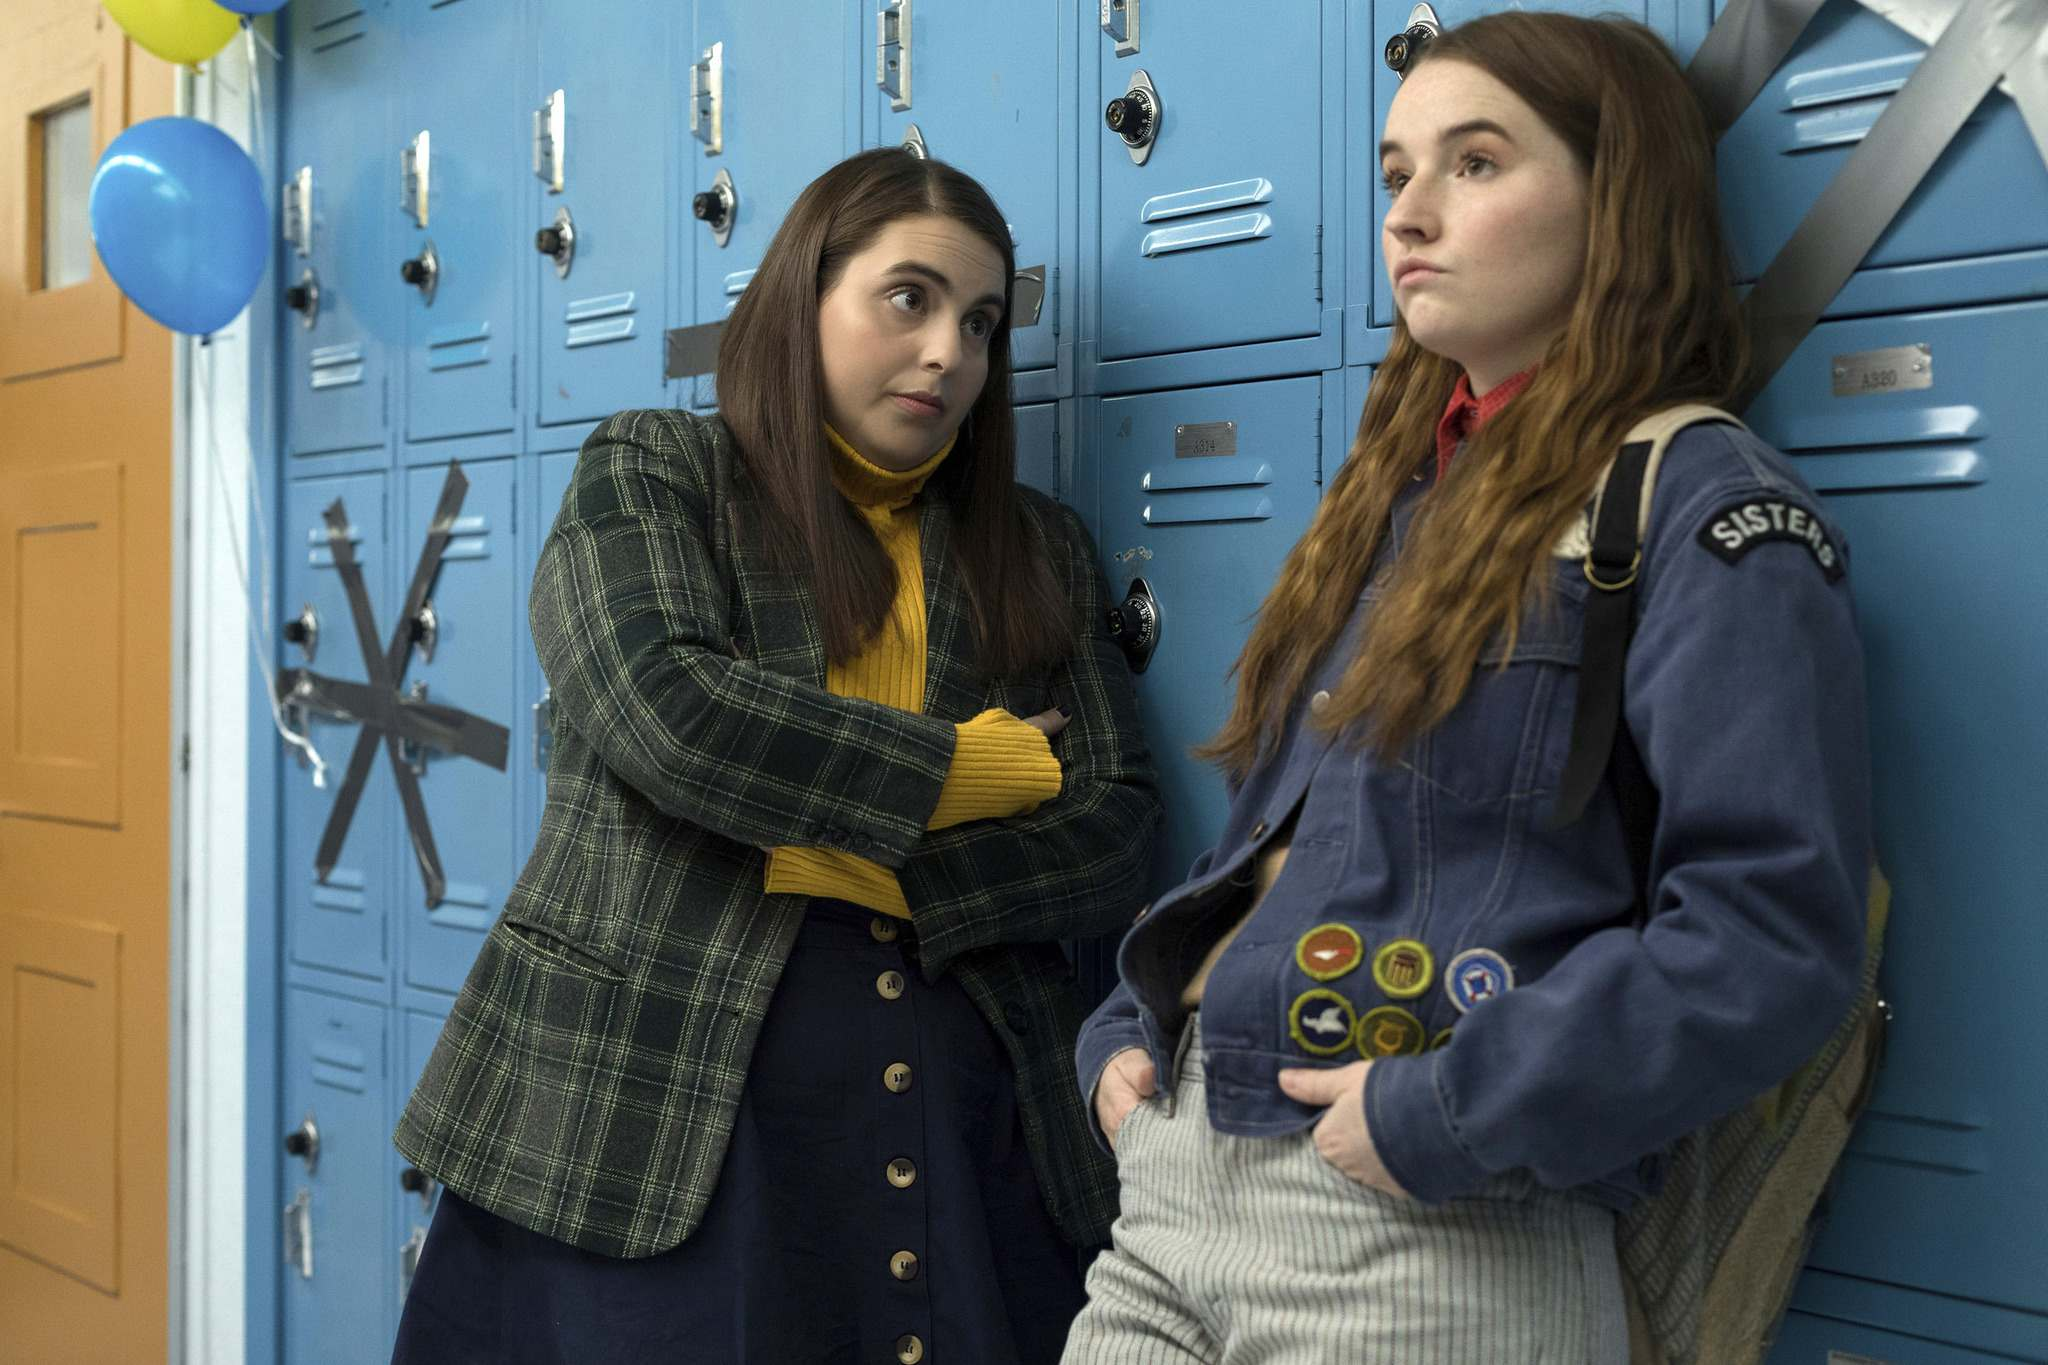 In Booksmart, Beanie Feldstein (left) and Kaitlyn Dever play best friends and academic overachievers Molly and Amy, who are determined to make up for lost time by cramming all their teen experiences into the night before grad. (Francois Duhamel / Annapurna Pictures)